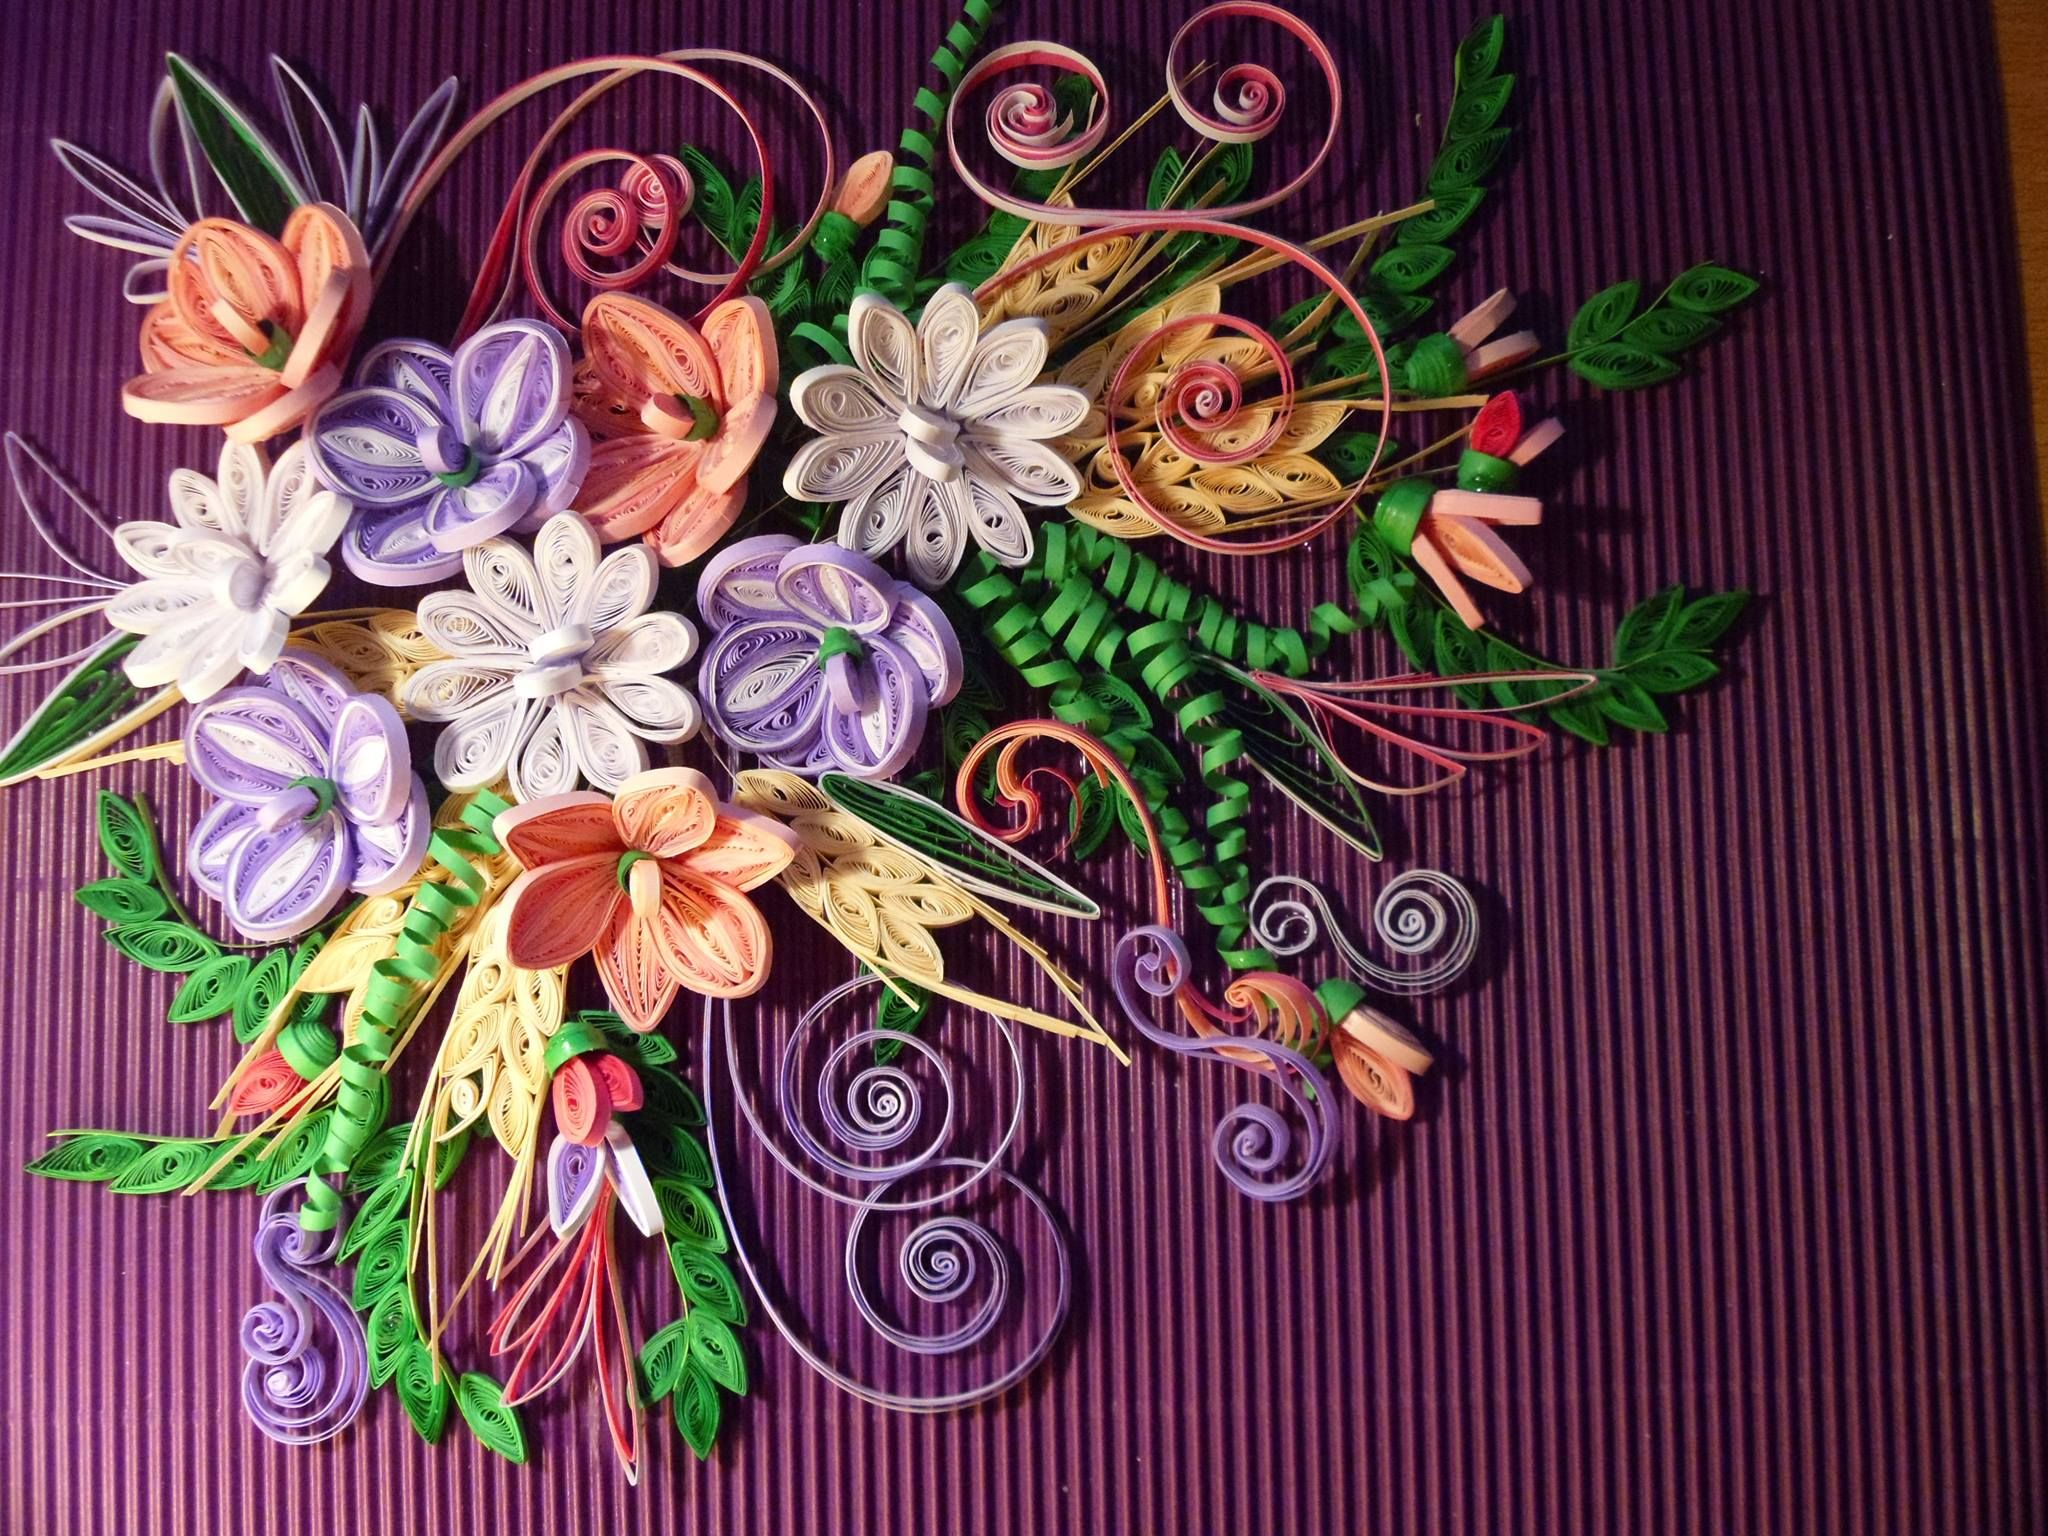 This Is My Hand Work Quilling Art By Bmiletic Pinterest